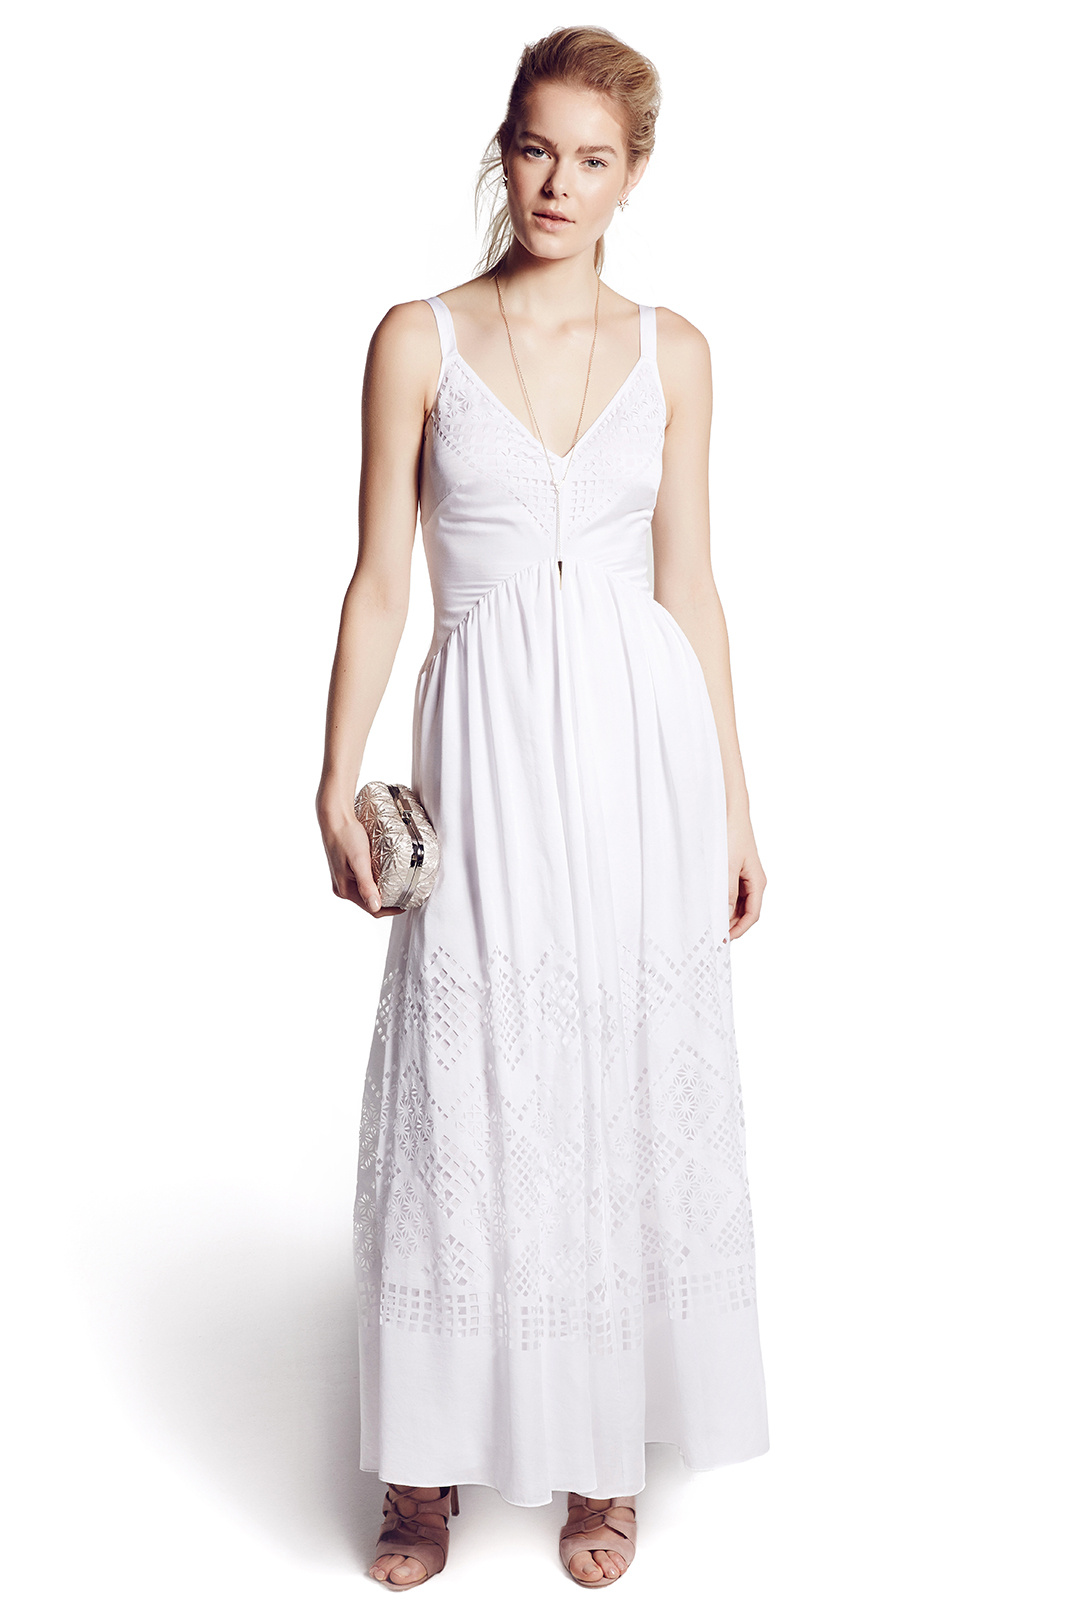 d866b1dd16cd I absolutely adore this look for a country bride. It s casual enough for  the outdoor setting